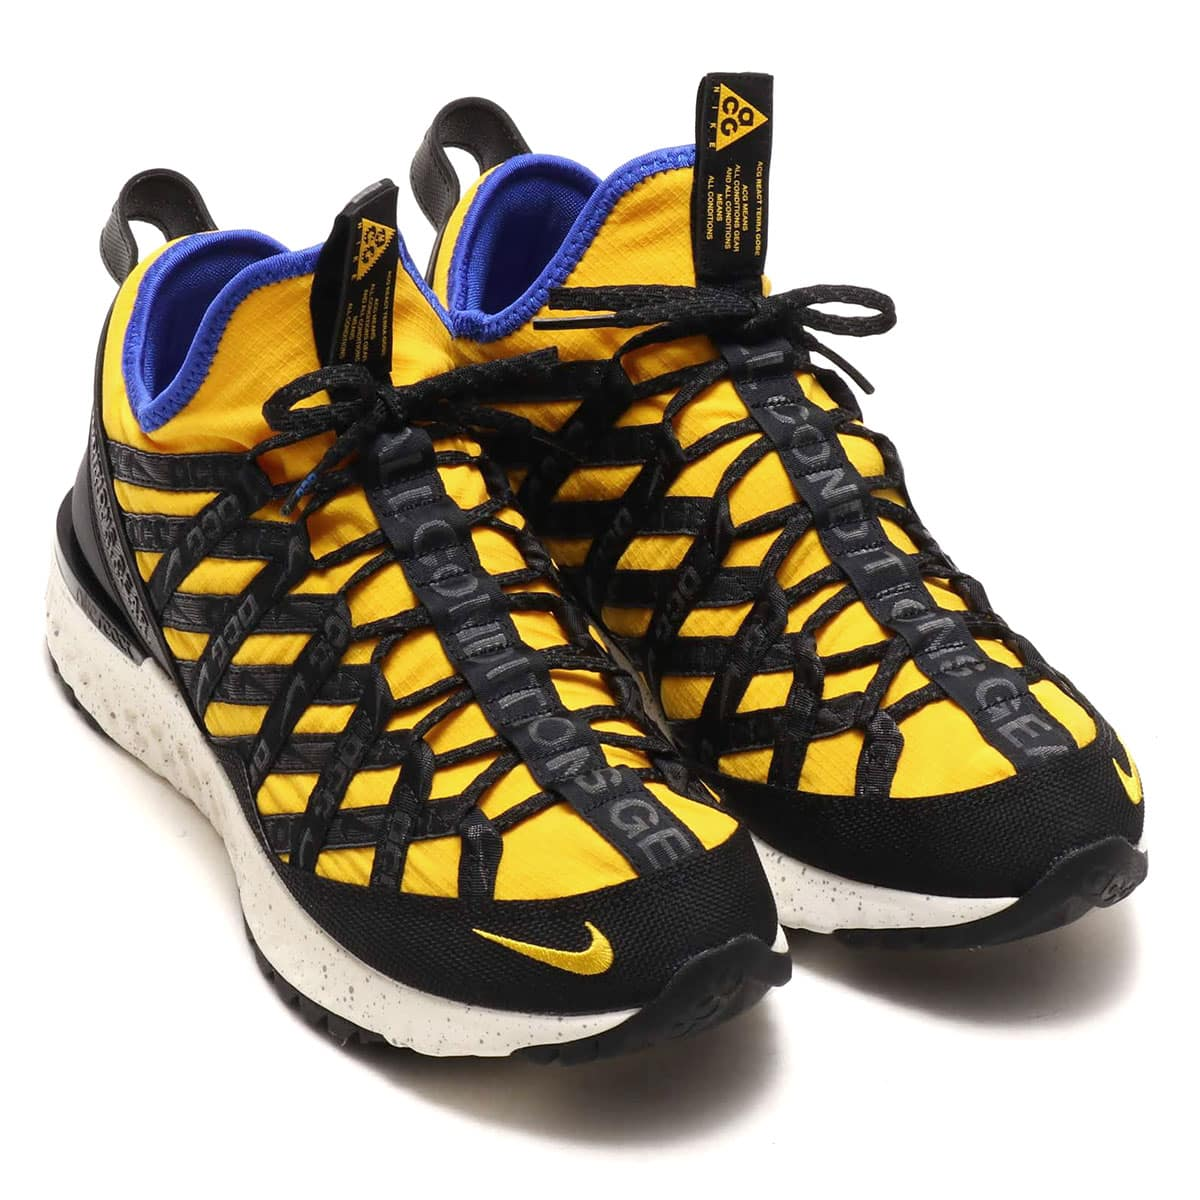 NIKE ACG REACT TERRA GOBE AMARILLO/RACER BLUE-BLACK 19SU-S_photo_large